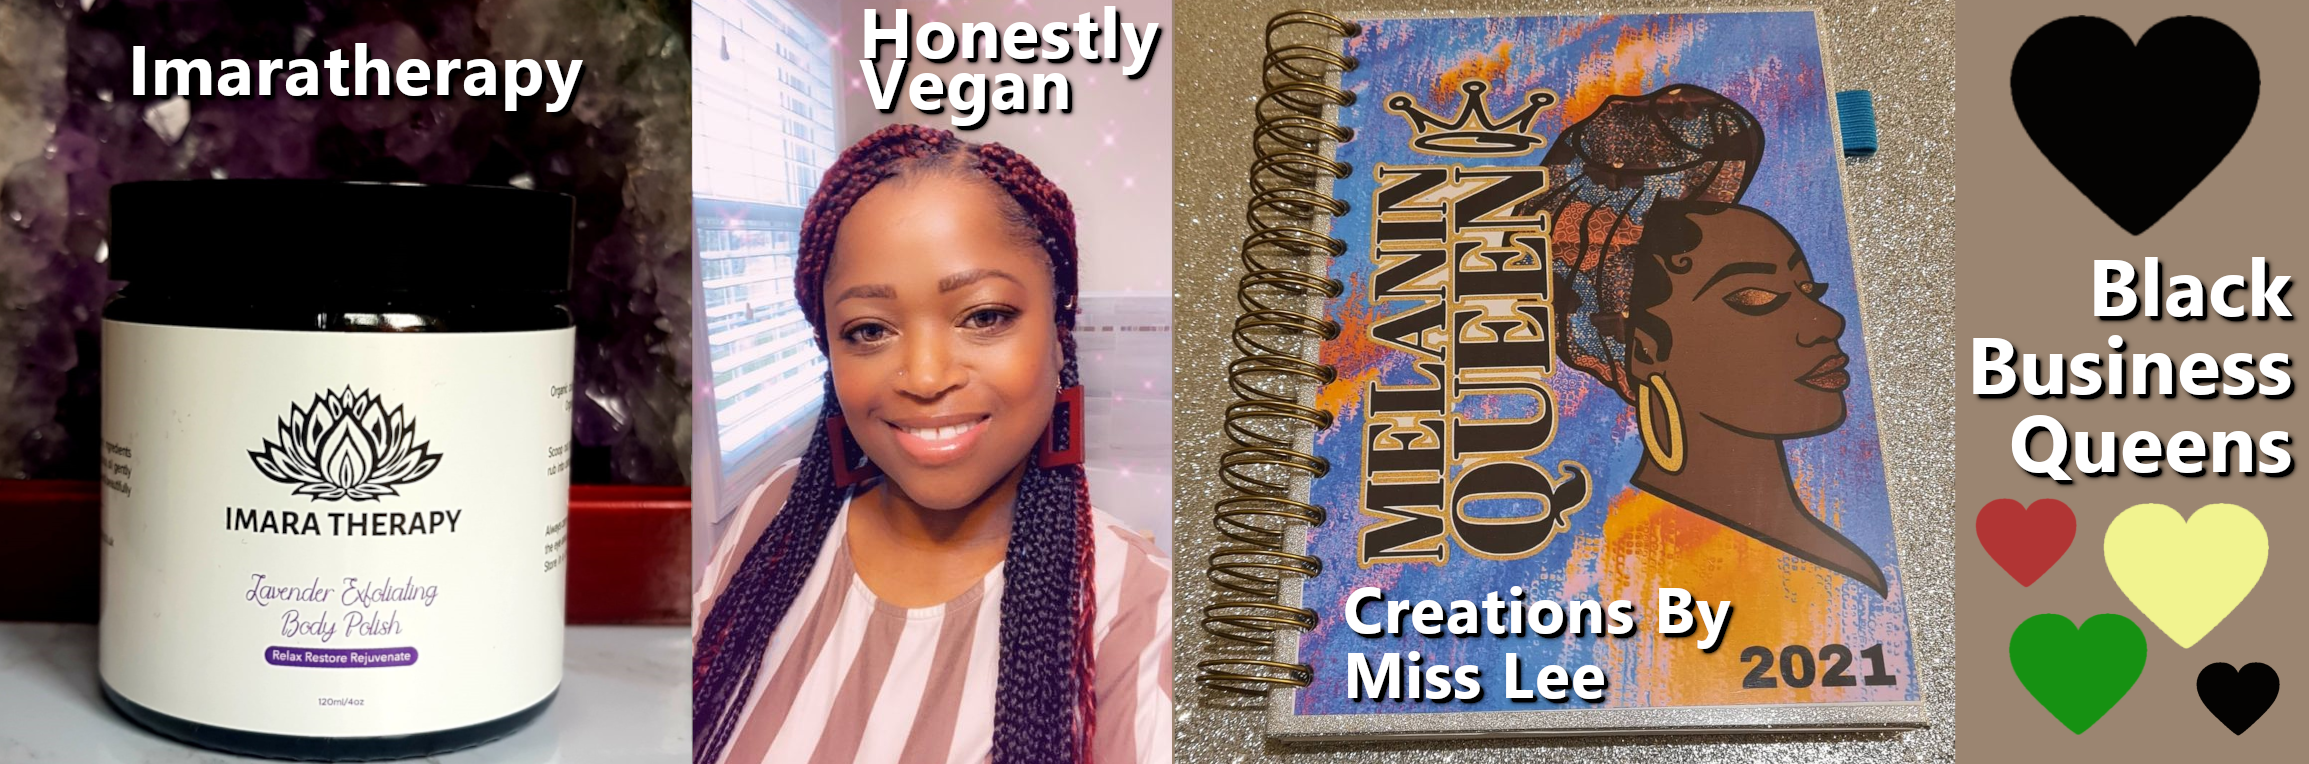 imaratherapy honestly vegan creations by miss lee melanin que chef writer aromatherapy black business queens rebeljewel missrebeljewel rebel jewel history month 2021